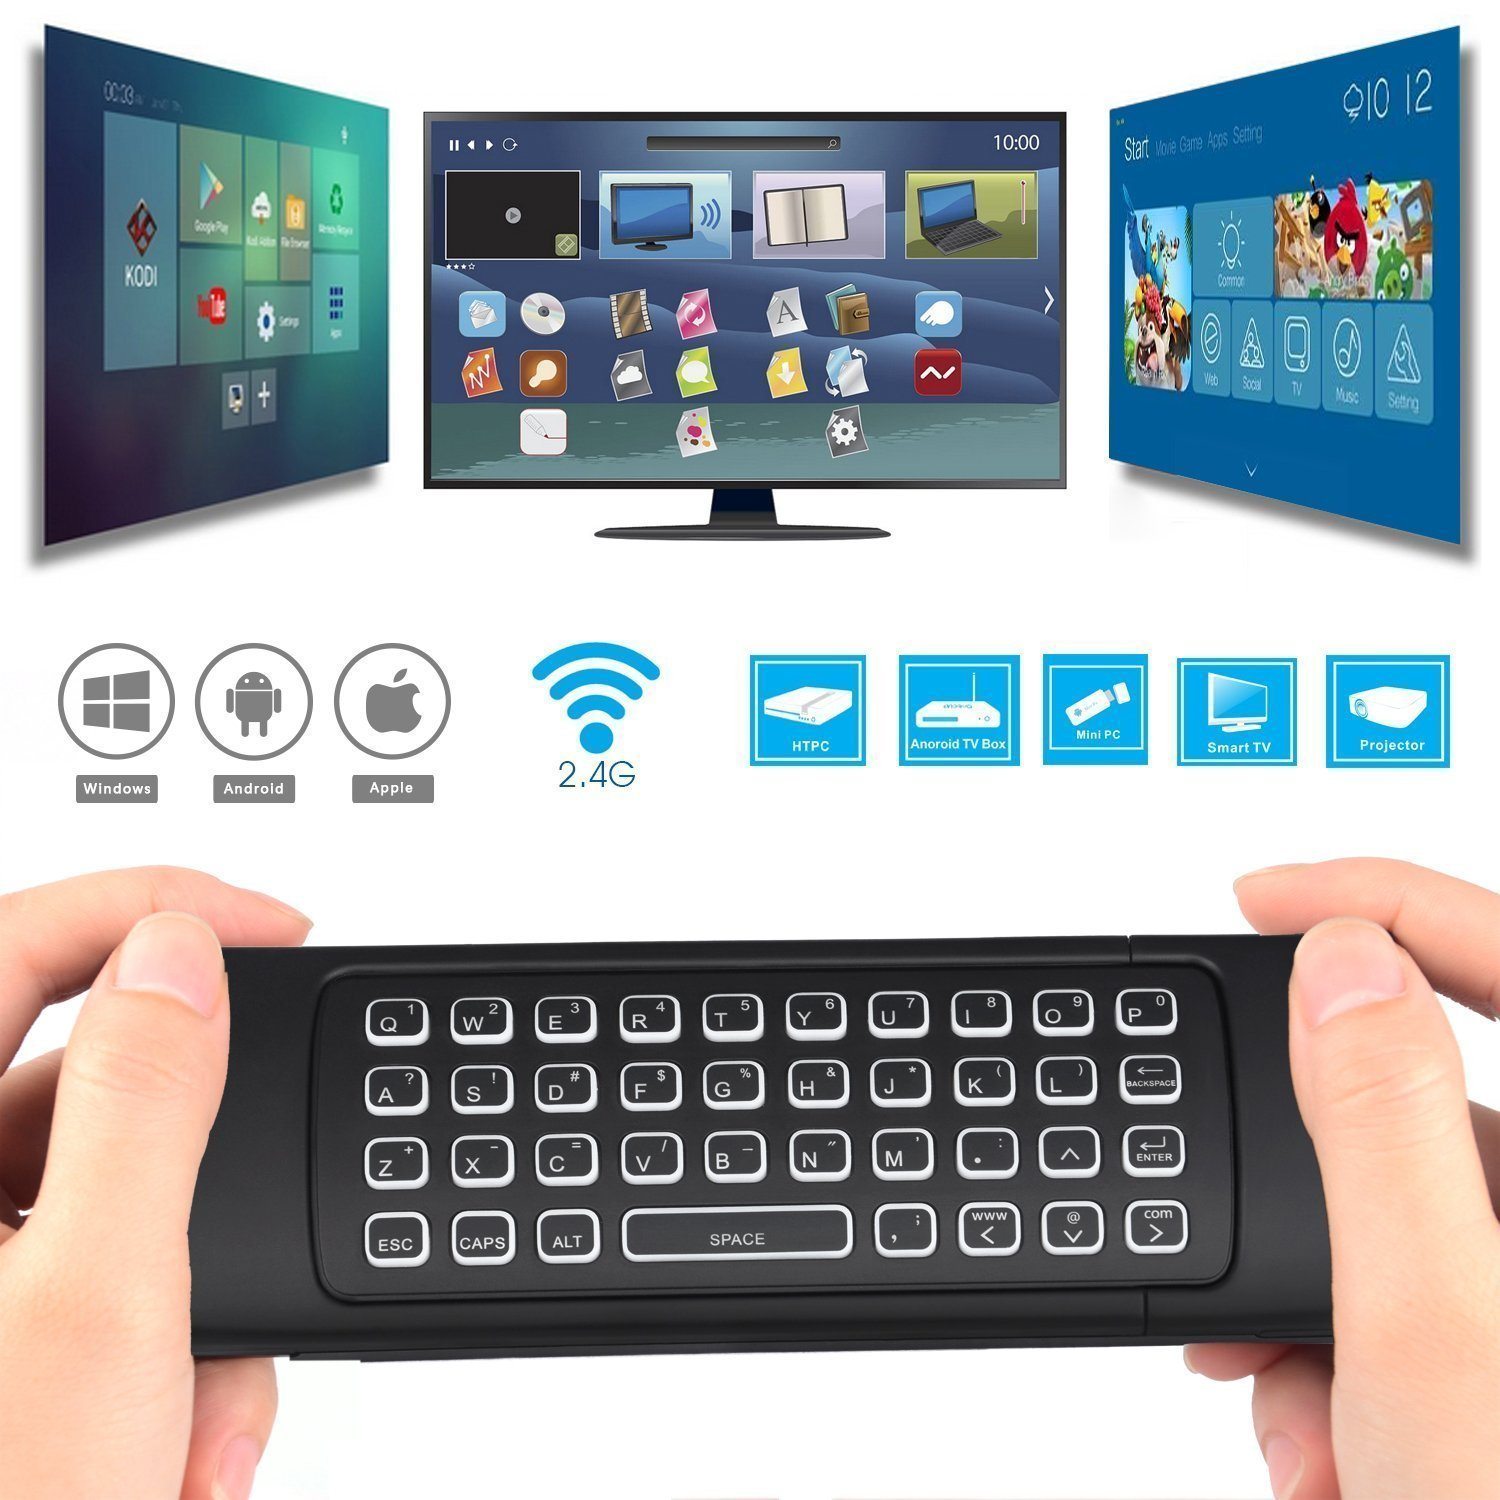 Backlit Air Mouse Keyboard Kodi Remote MX3 Pro, 2 4Ghz Mini Wireless  Android TV Control & Infrared Learning Microphone for Computer PC Android  TV Box